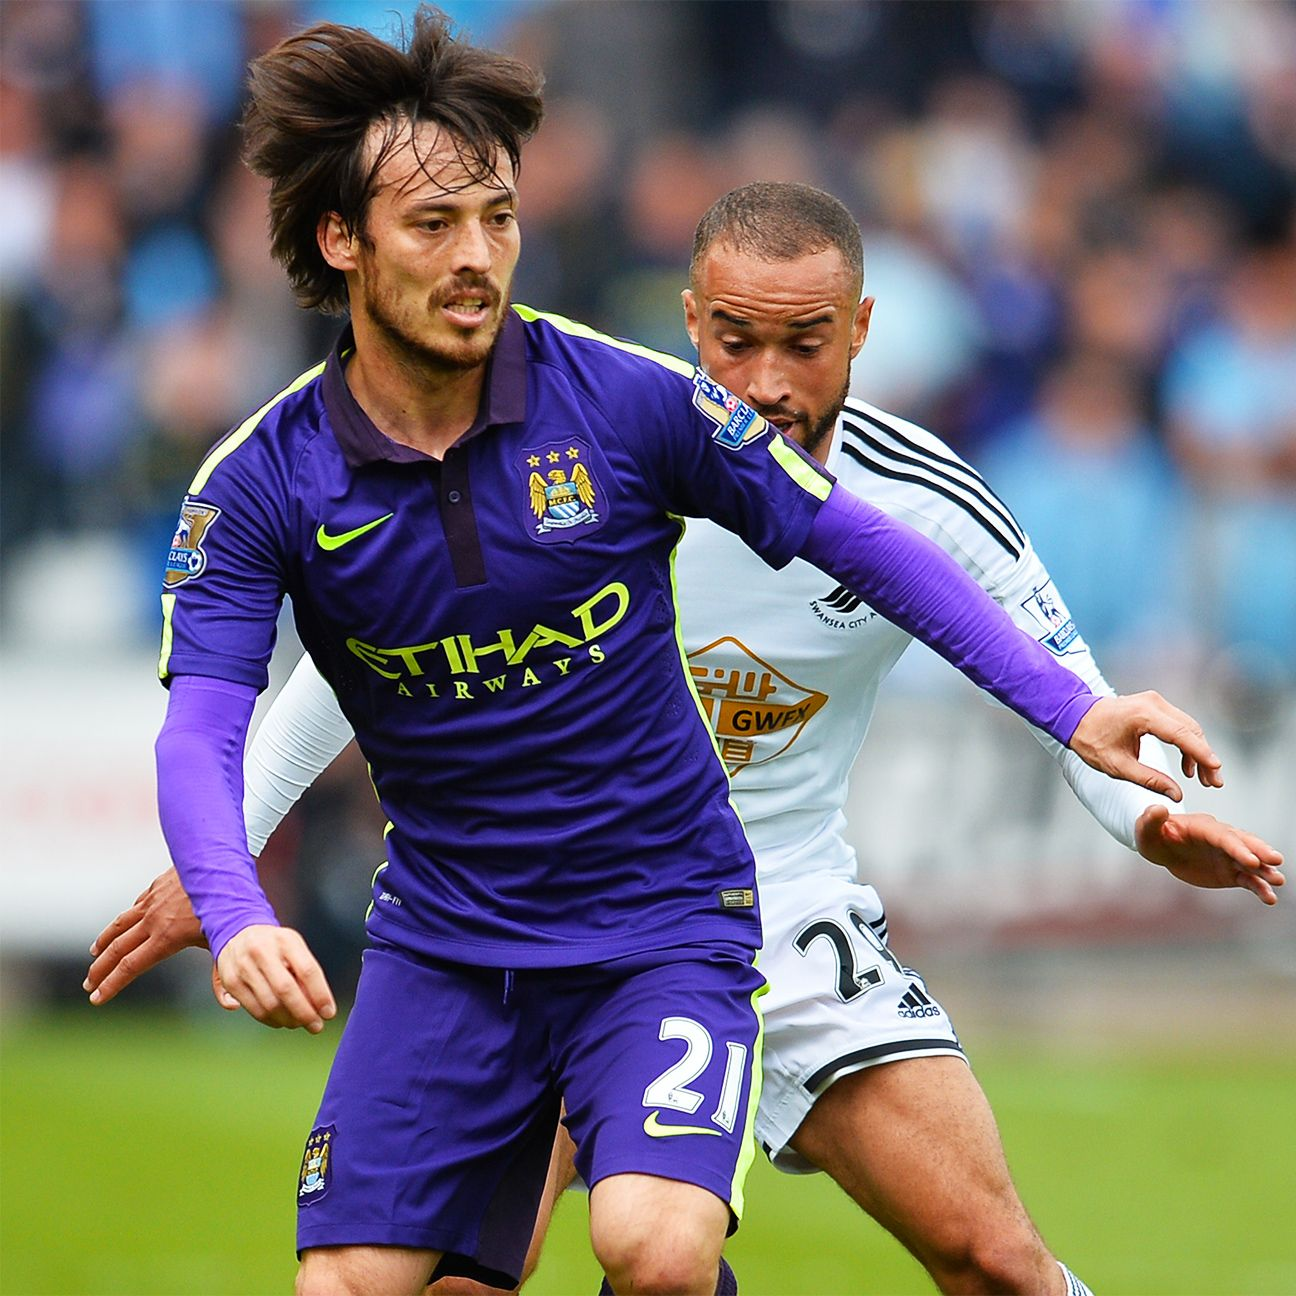 David Silva was one of two Manchester City players to put in a top fantasy performance over the weekend.